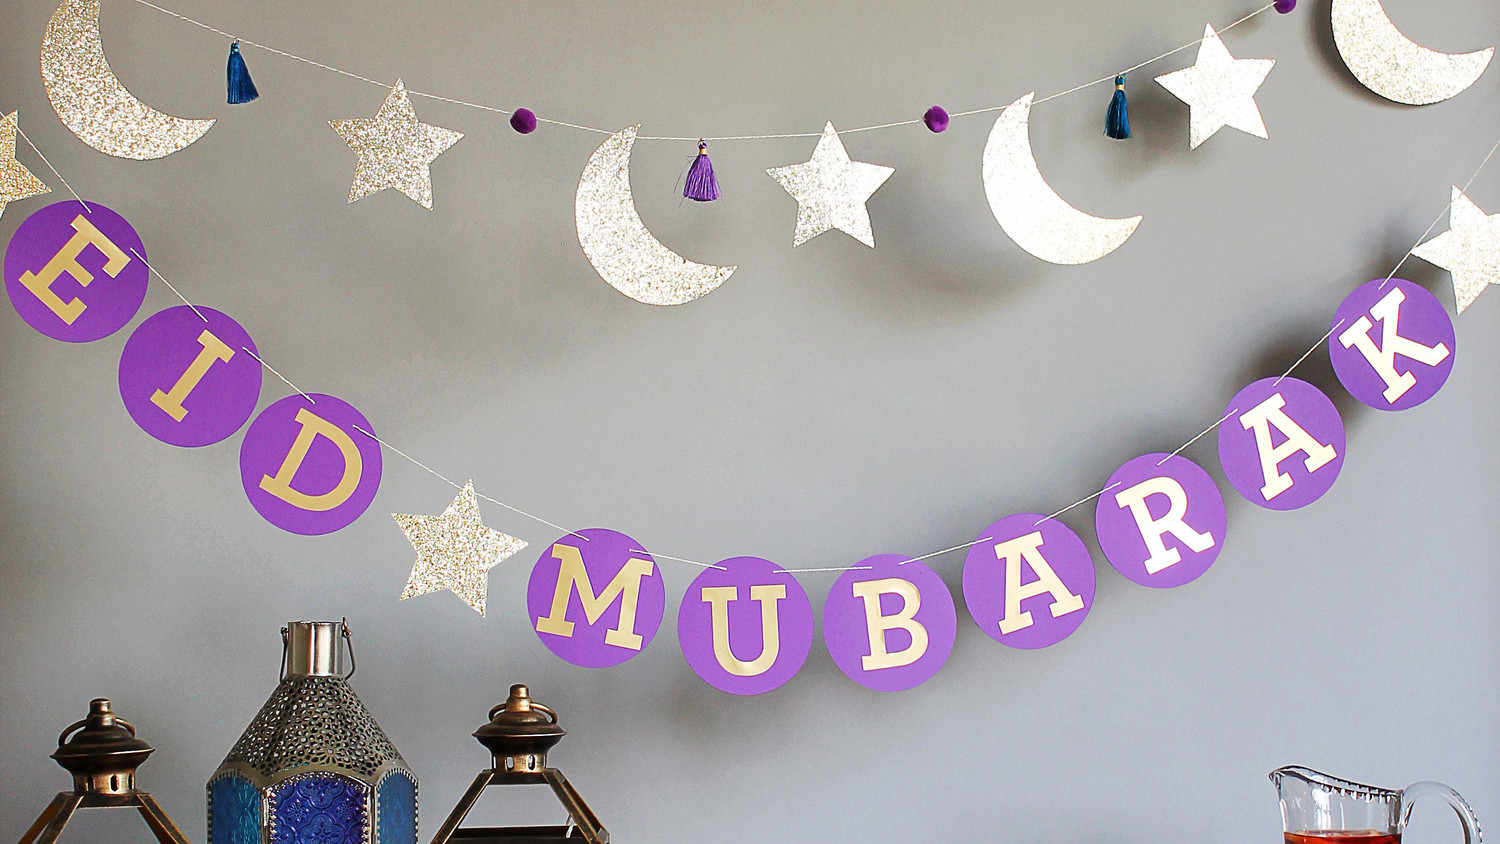 Cool Kid Backyard Party Eid Al-Fitr Decorations - eid-crescent-star-garland_horiz  Snapshot_701128 .jpg?itok\u003dXKLZdAqL